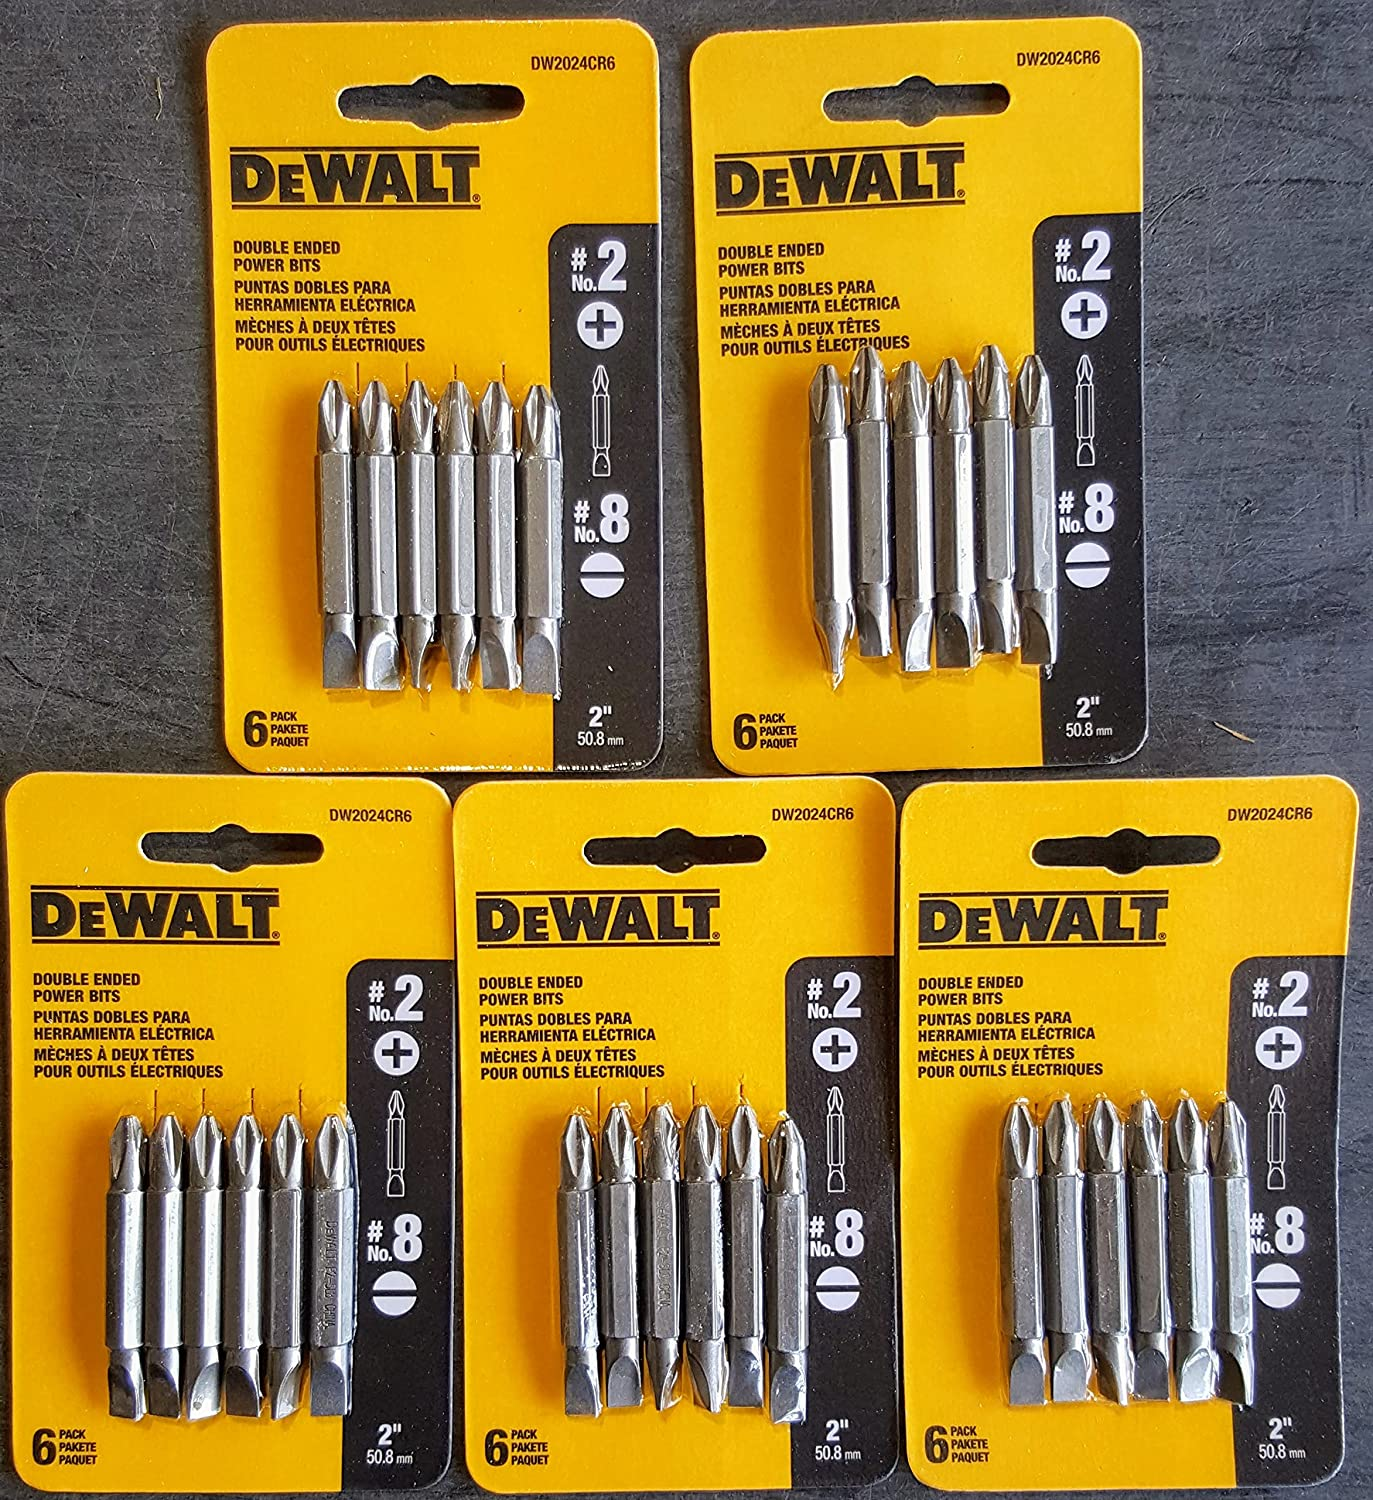 (5 Packs) Dewalt Dw2024Cr6#2 Phillips/#8 Slotted Double Ended Bit - 6Pk. Card